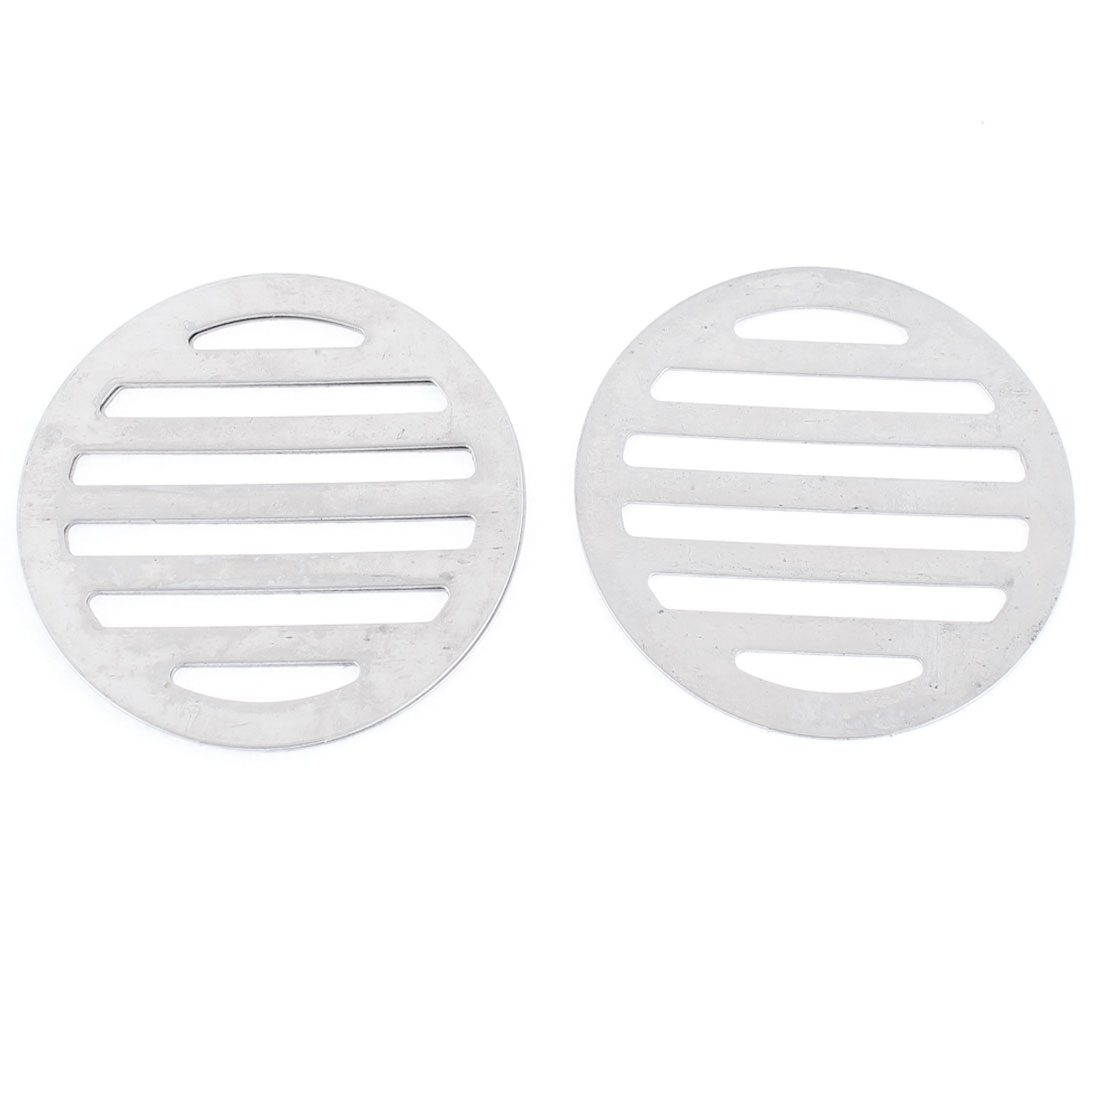 "Stainless Steel Kitchen Bathroom Round Floor Drain Cover 3"" 7.5cm 3Pcs"